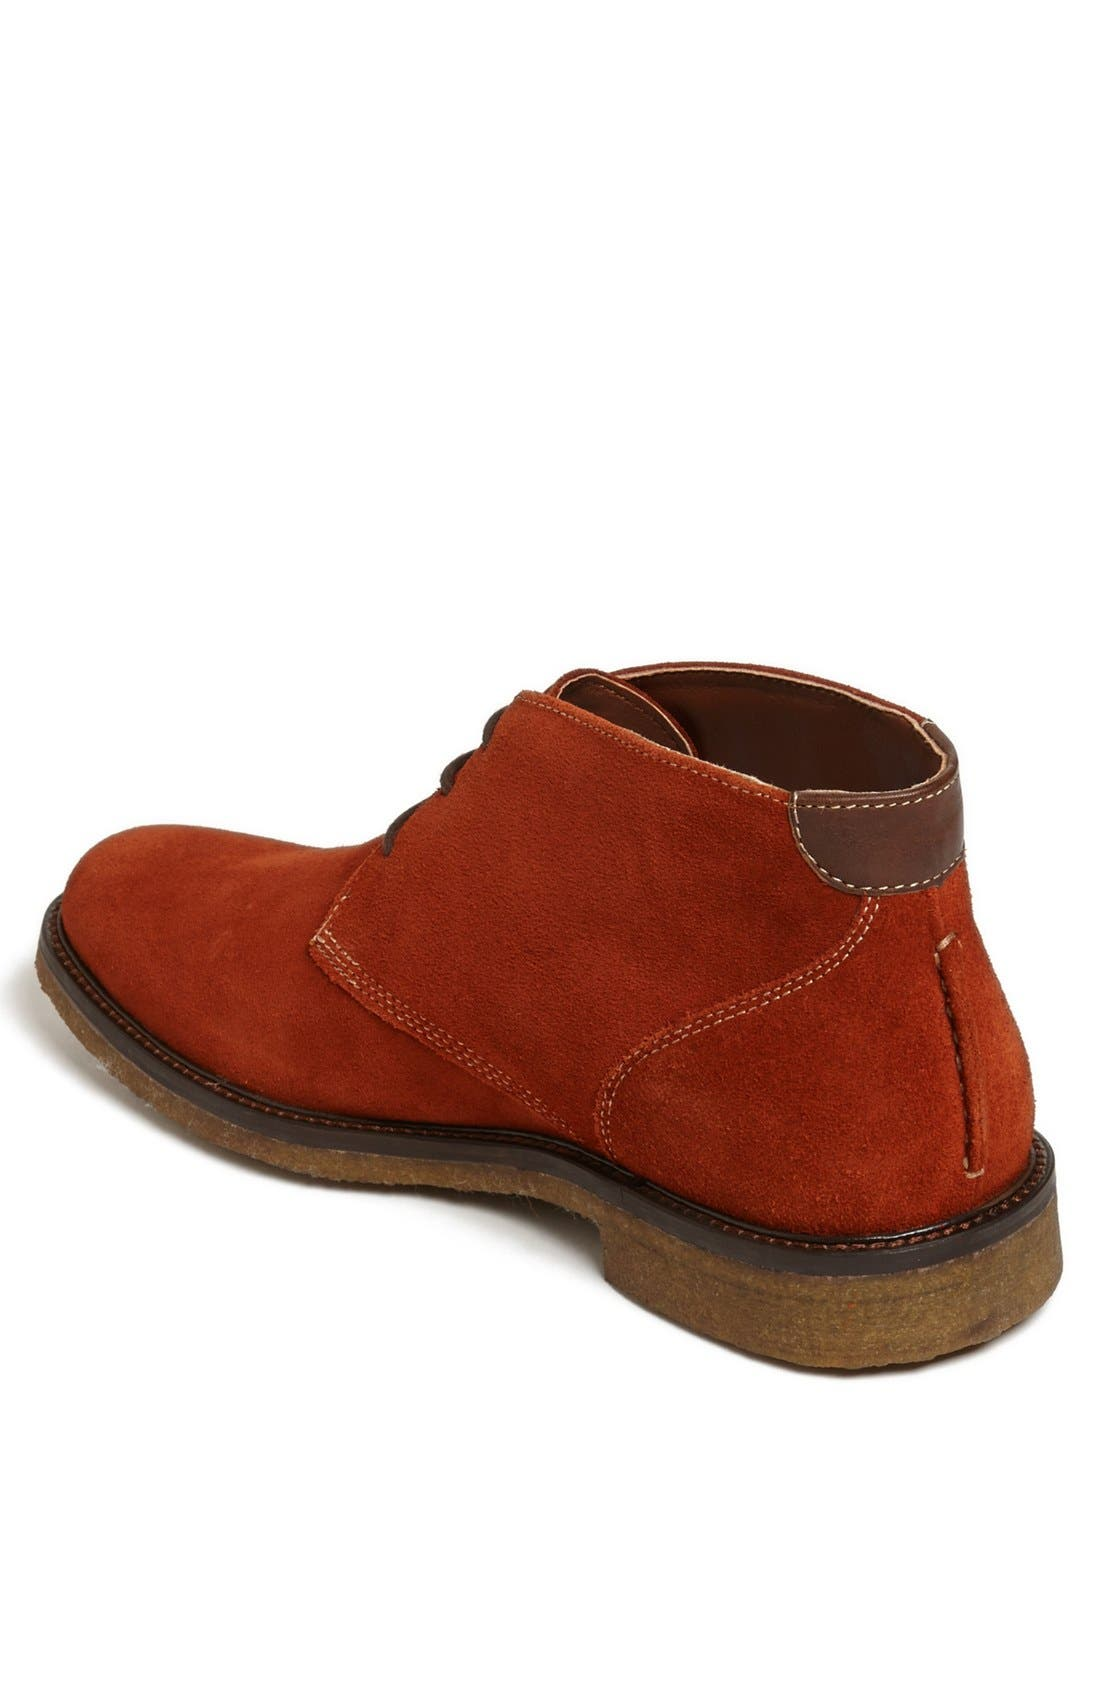 'Copeland' Suede Chukka Boot,                             Alternate thumbnail 27, color,